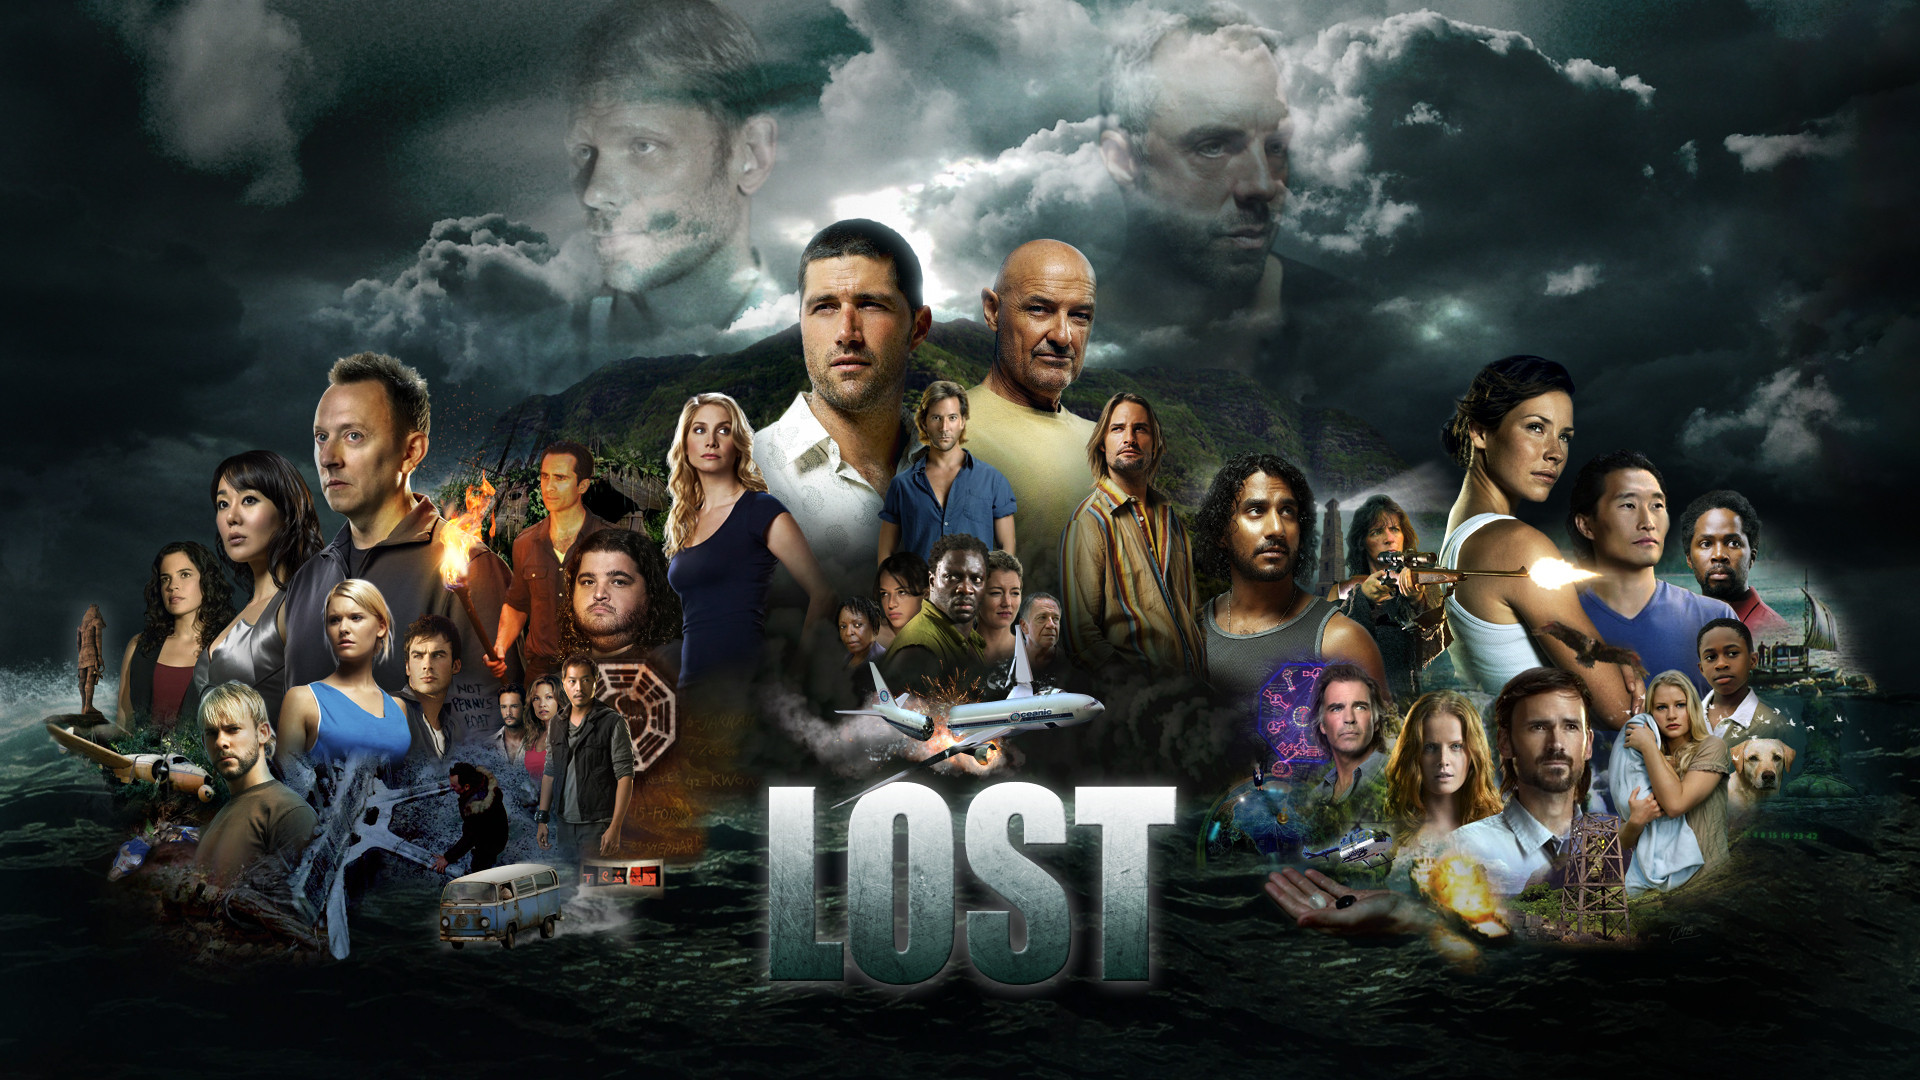 lost wallpapers, pictures, images